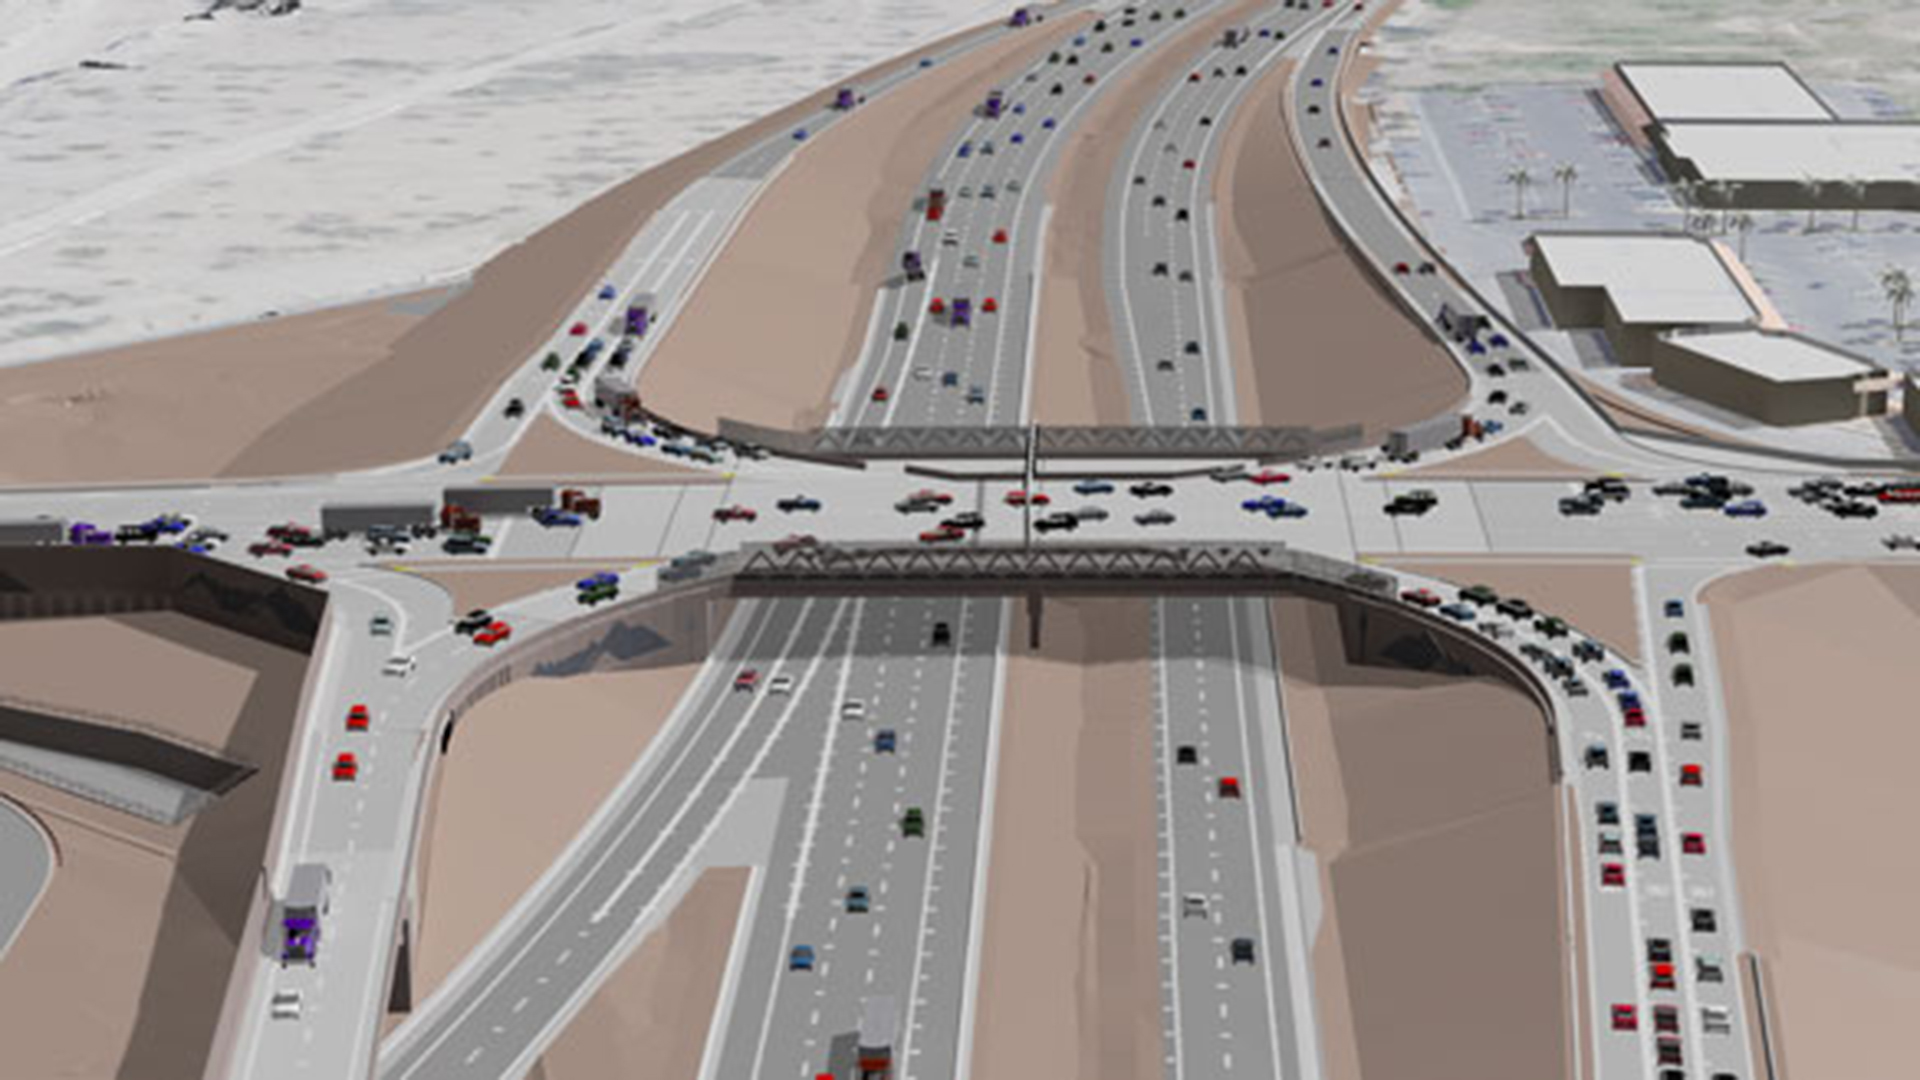 A rendering of what the completed Ajo Way/Interstate 19 will look like once completed. The project is expected to be complete in early 2018.